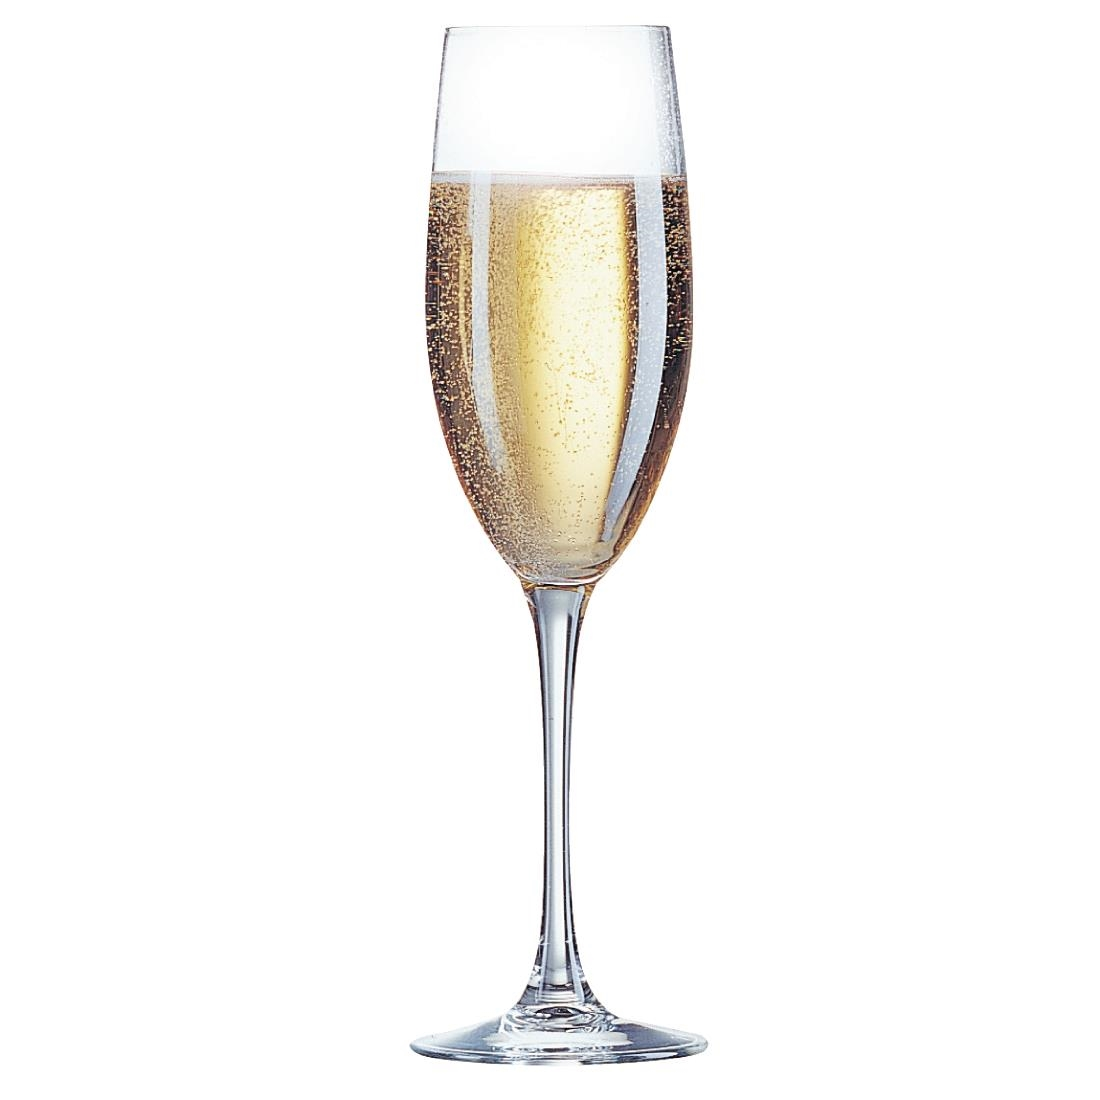 champagne flute png images galleries with a bite. Black Bedroom Furniture Sets. Home Design Ideas